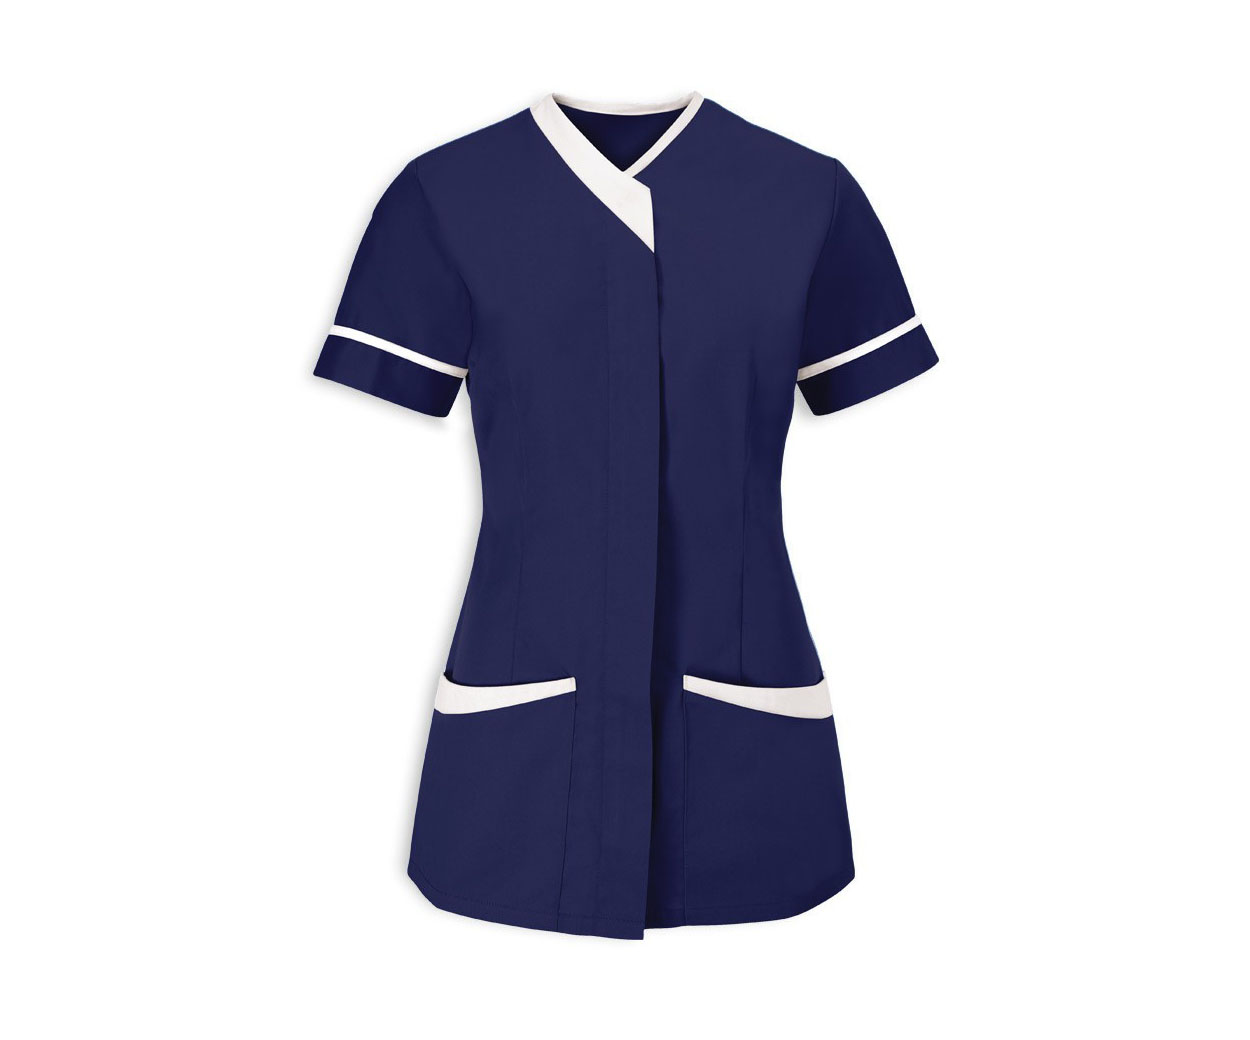 Ladies Navy with White Trim Healthcare Tunic